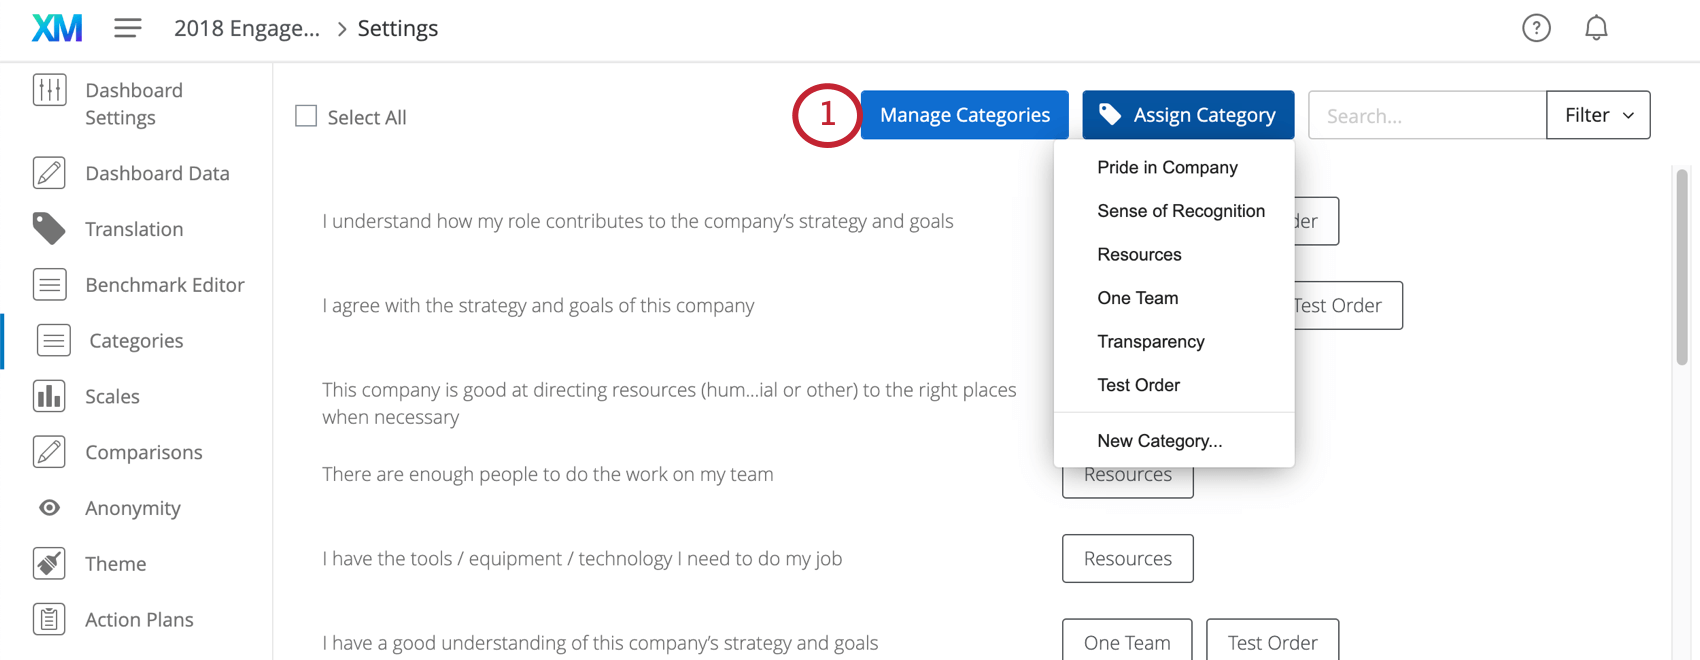 image of the manage categories button